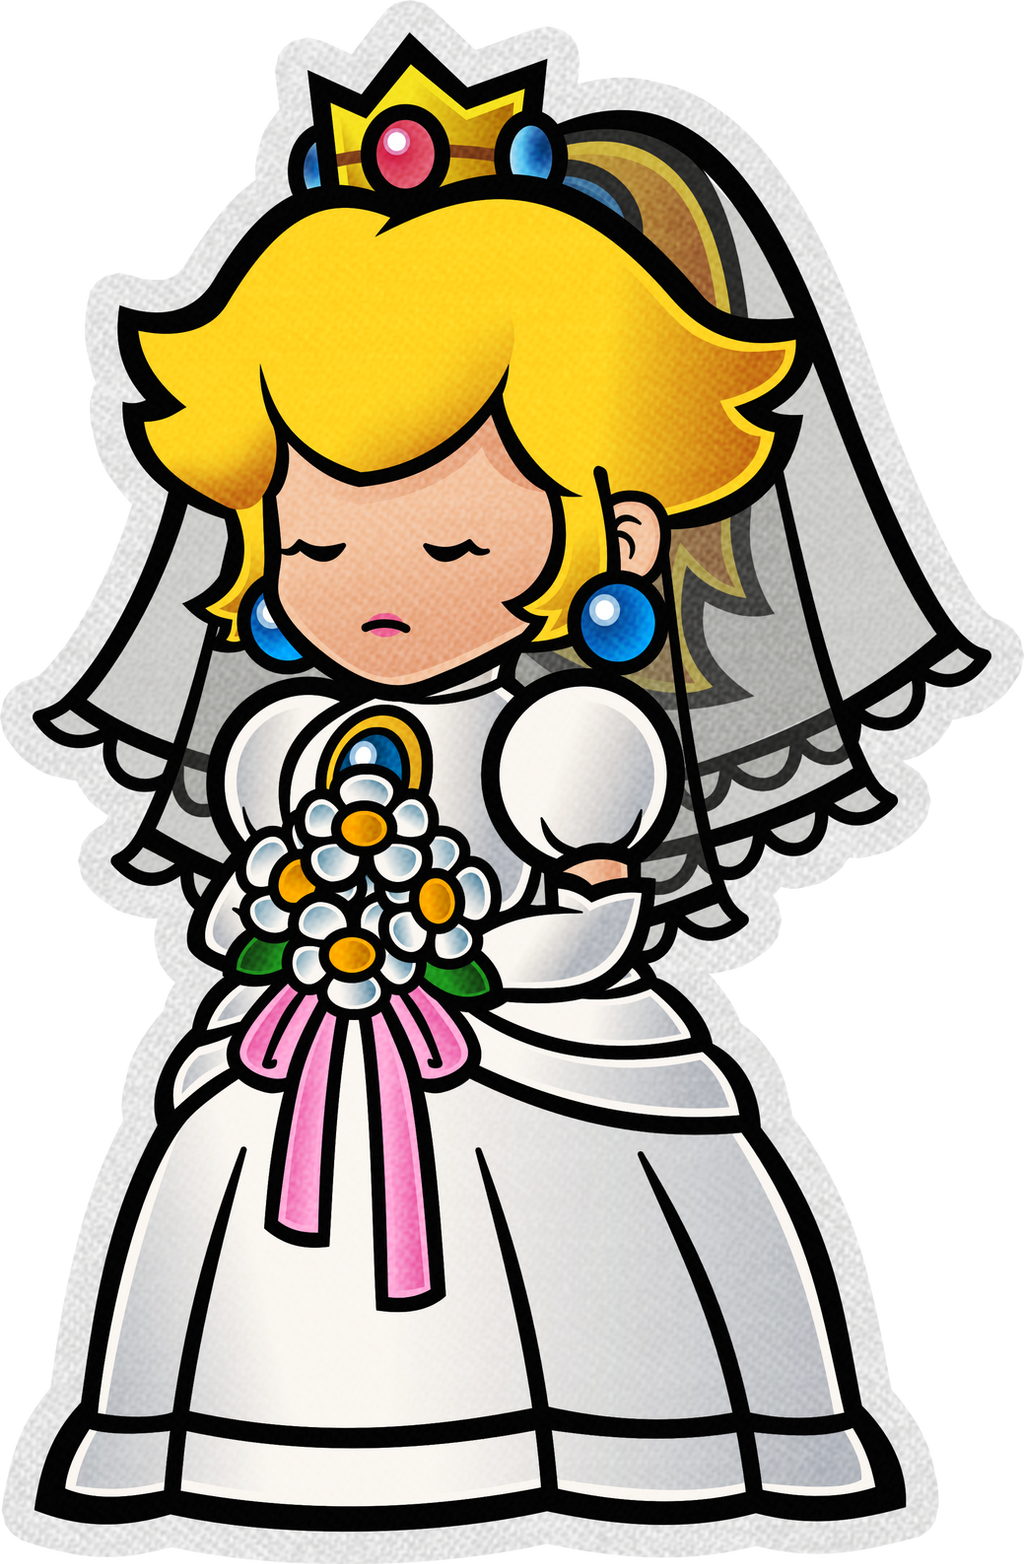 help with paper mario New flash game by spazkid up on shadbase its paper mario themed, so keep an open mind theres also new pokephilia on shagbase if you want something different instead tumblr facebook twitter.